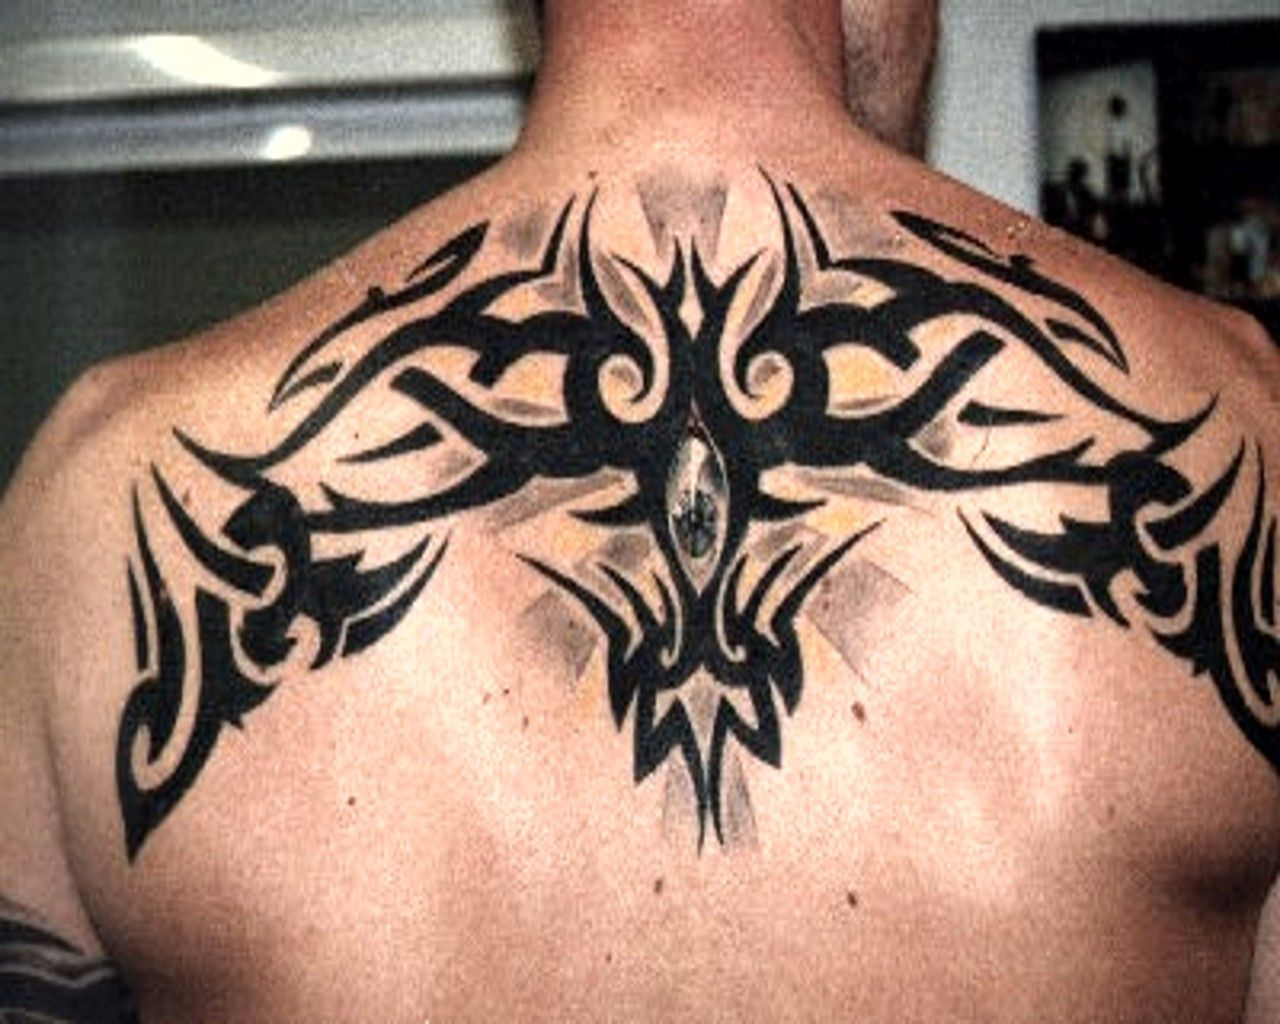 85 Best Tattoos For Men In 2020 Tribal Back Tattoos Back Tattoos For Guys Tribal Tattoos